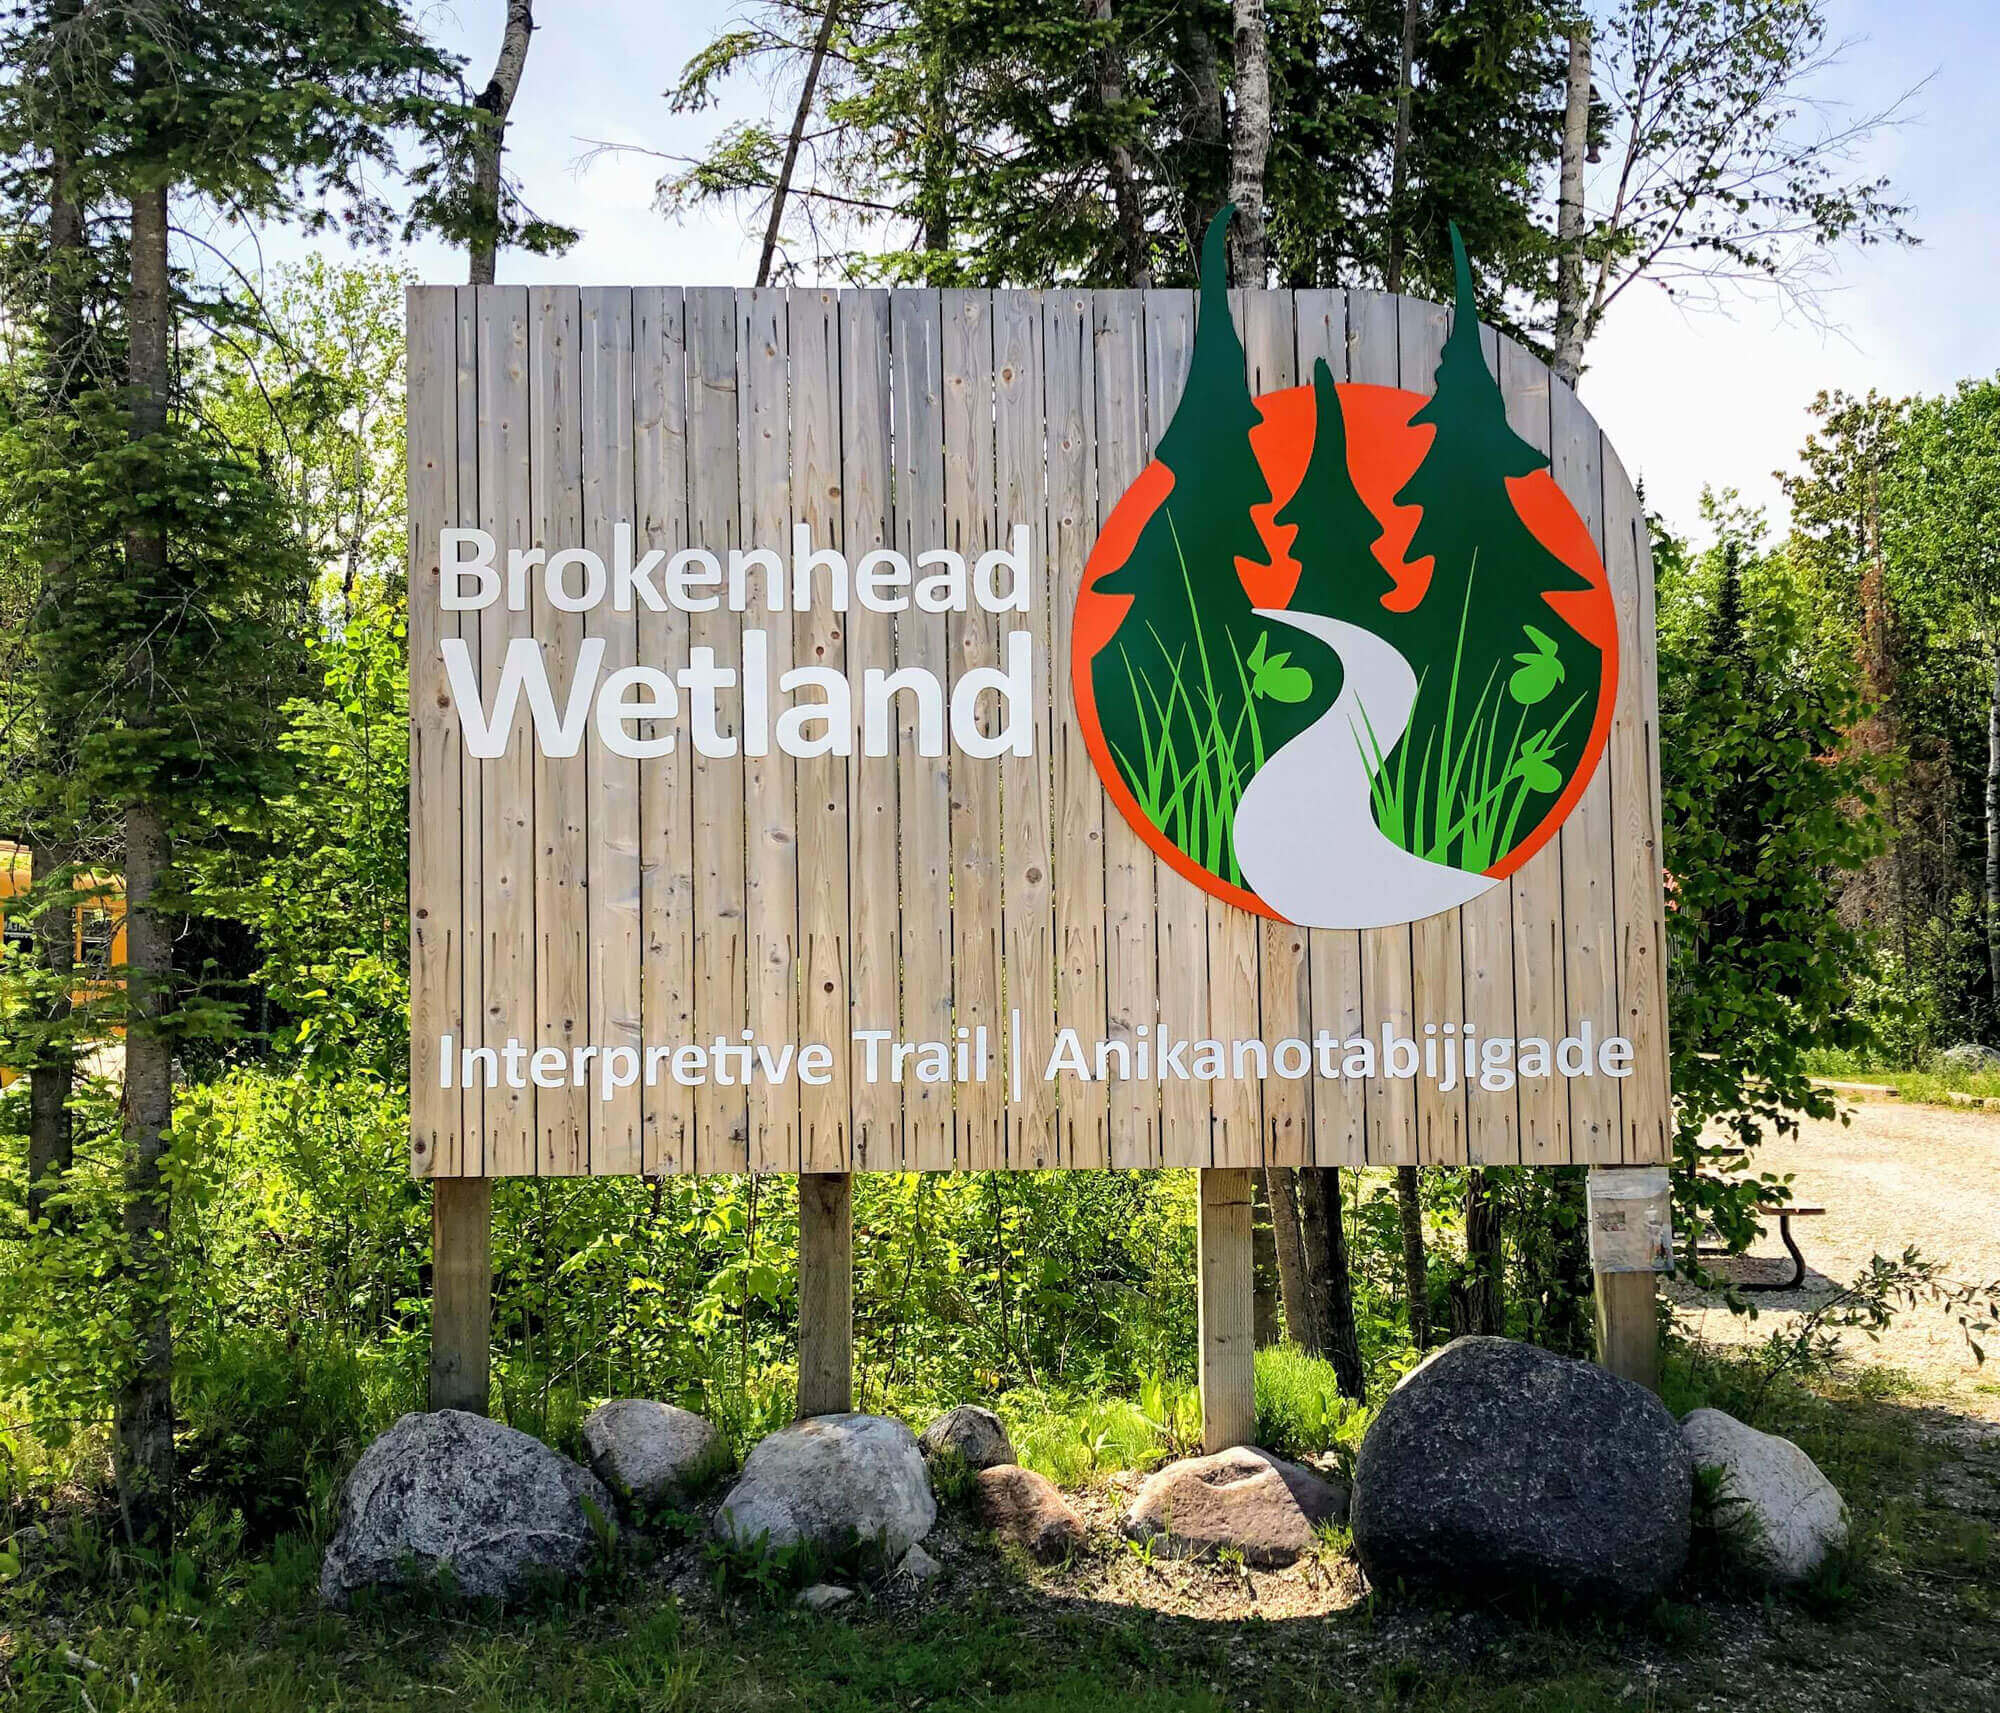 Brokenhead Wetland Interpretive Trail Signage